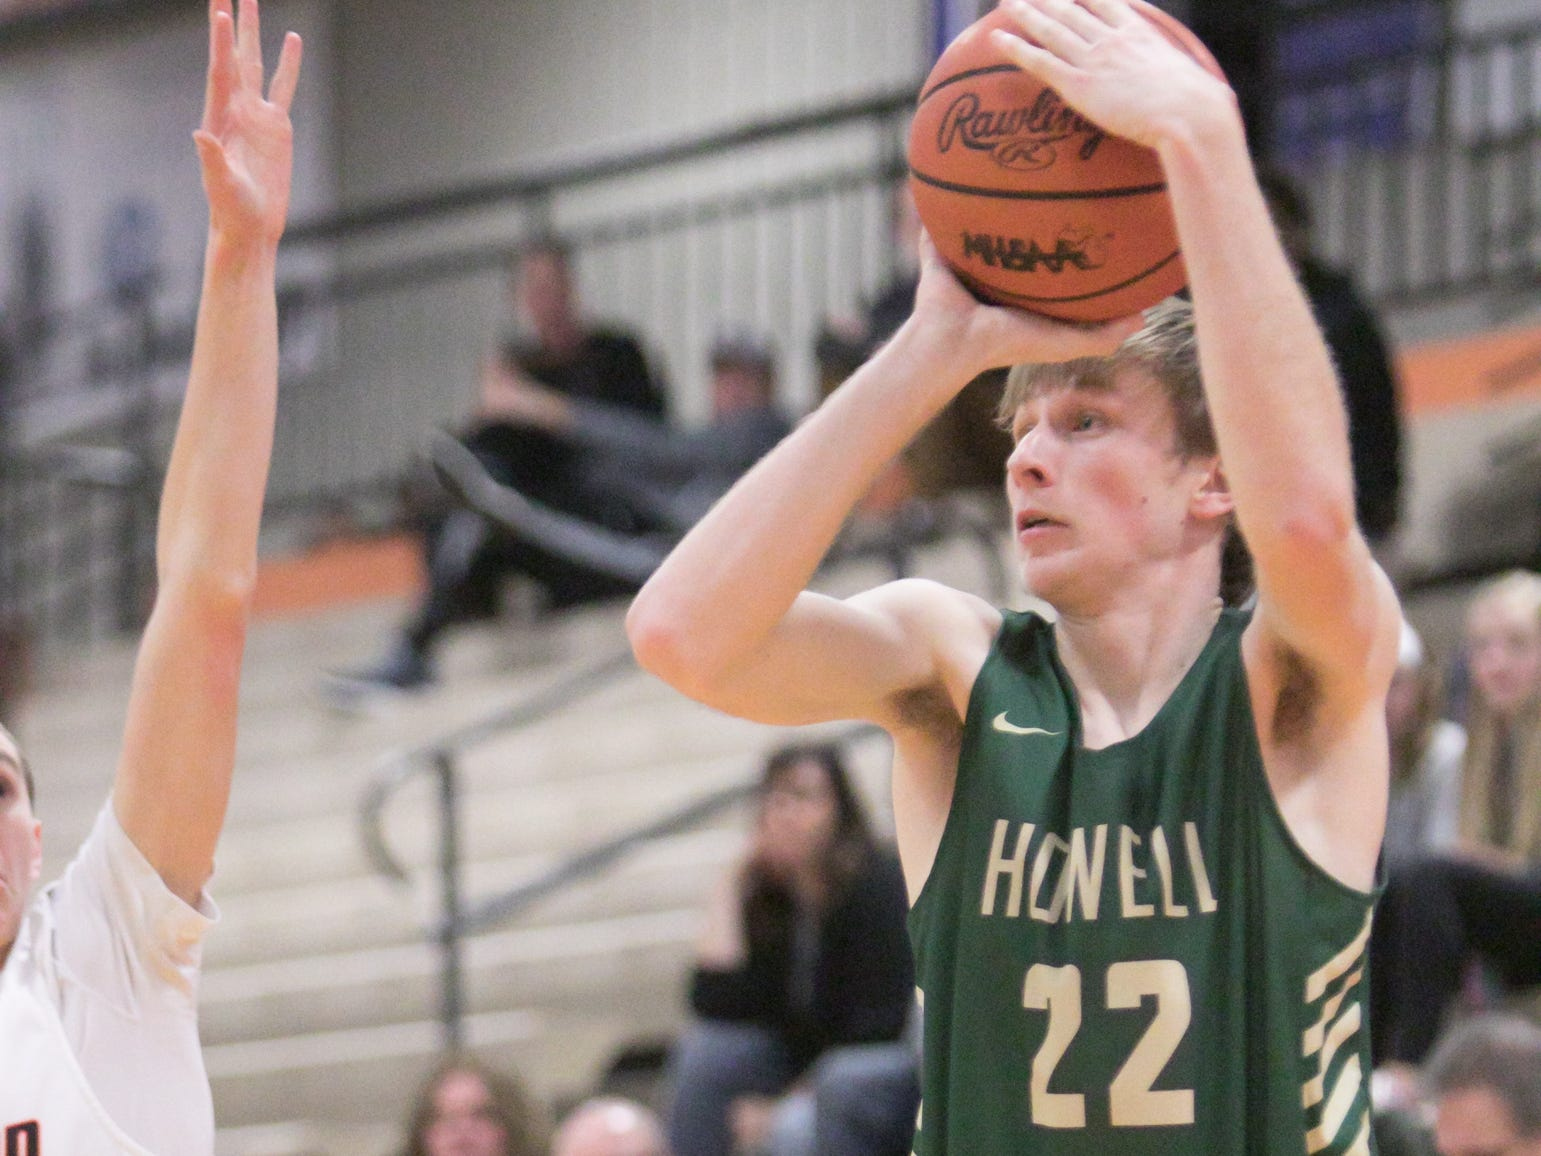 Cody Deurloo of Howell lines up a shot in the game at Brighton Tuesday, Jan. 8, 2019.